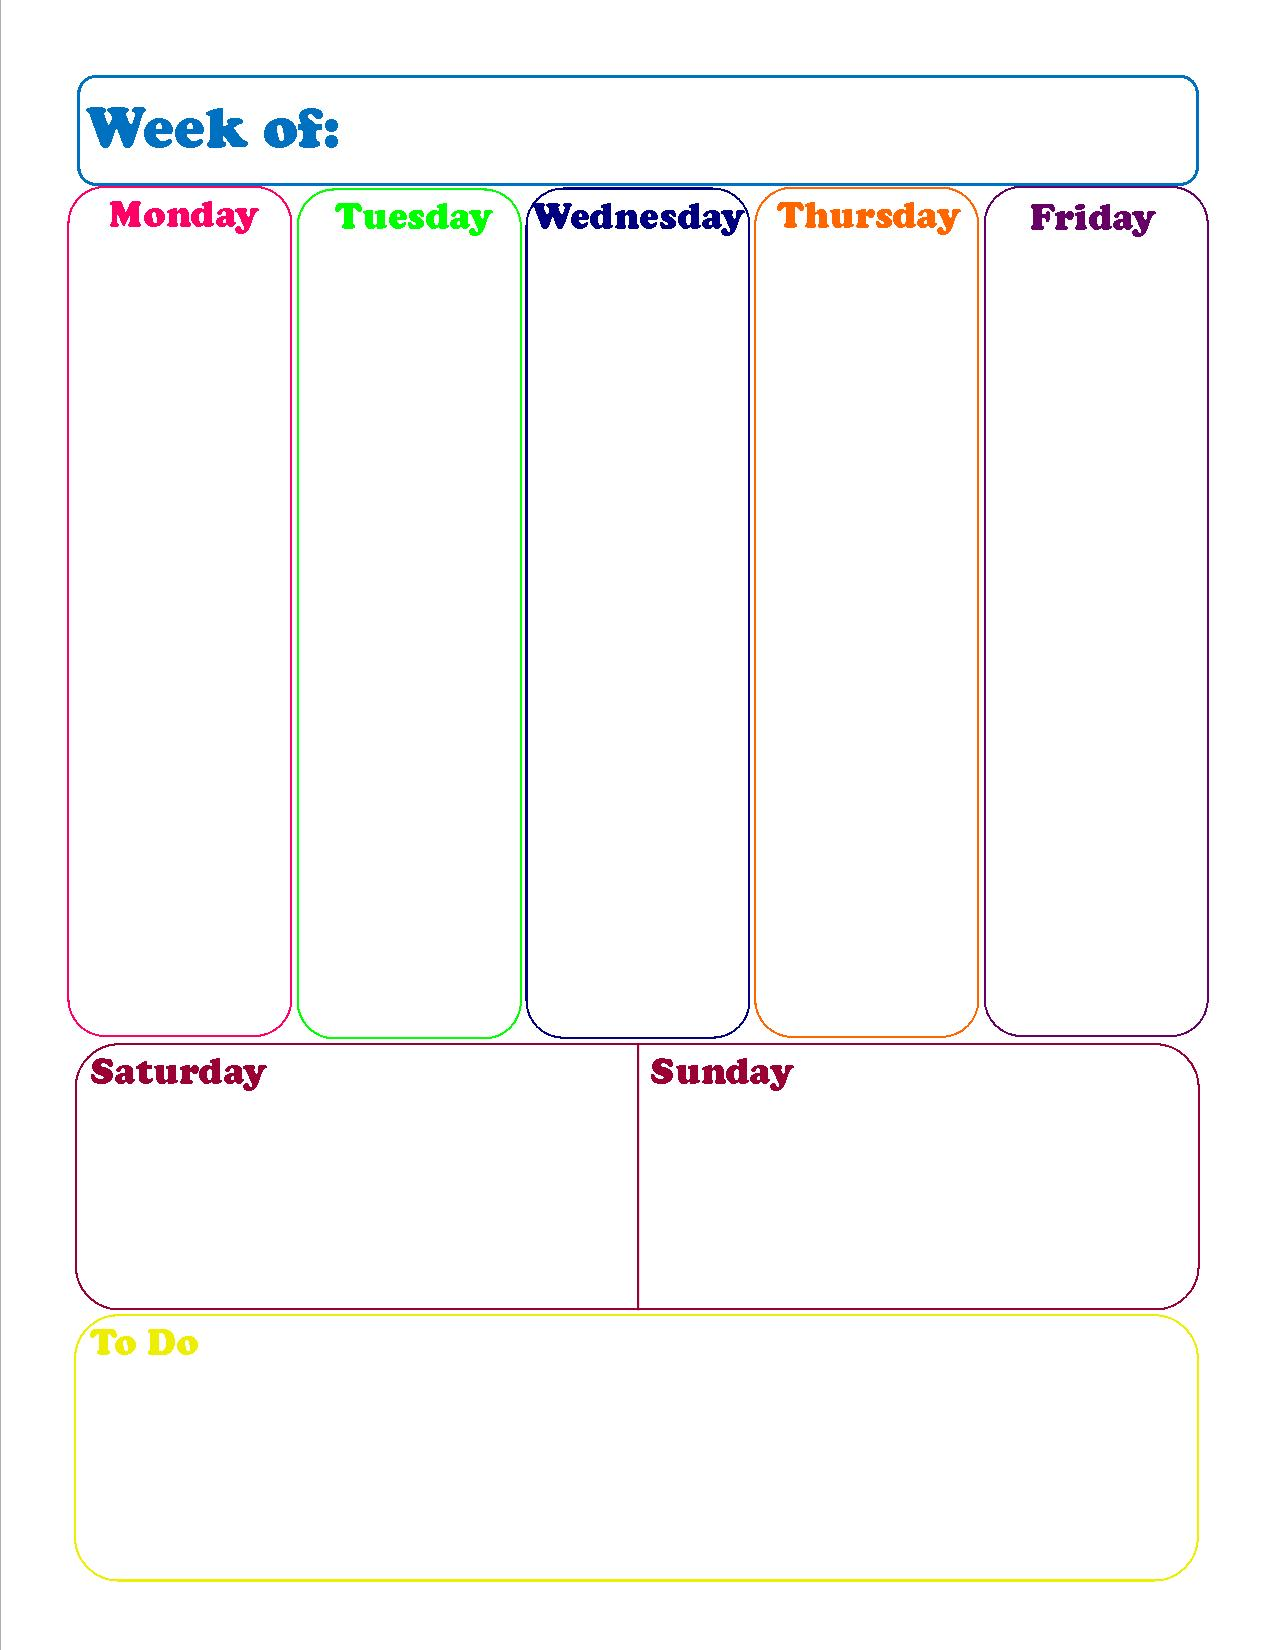 Weekly Calendar Print Out : Weekly calendar print out new template site